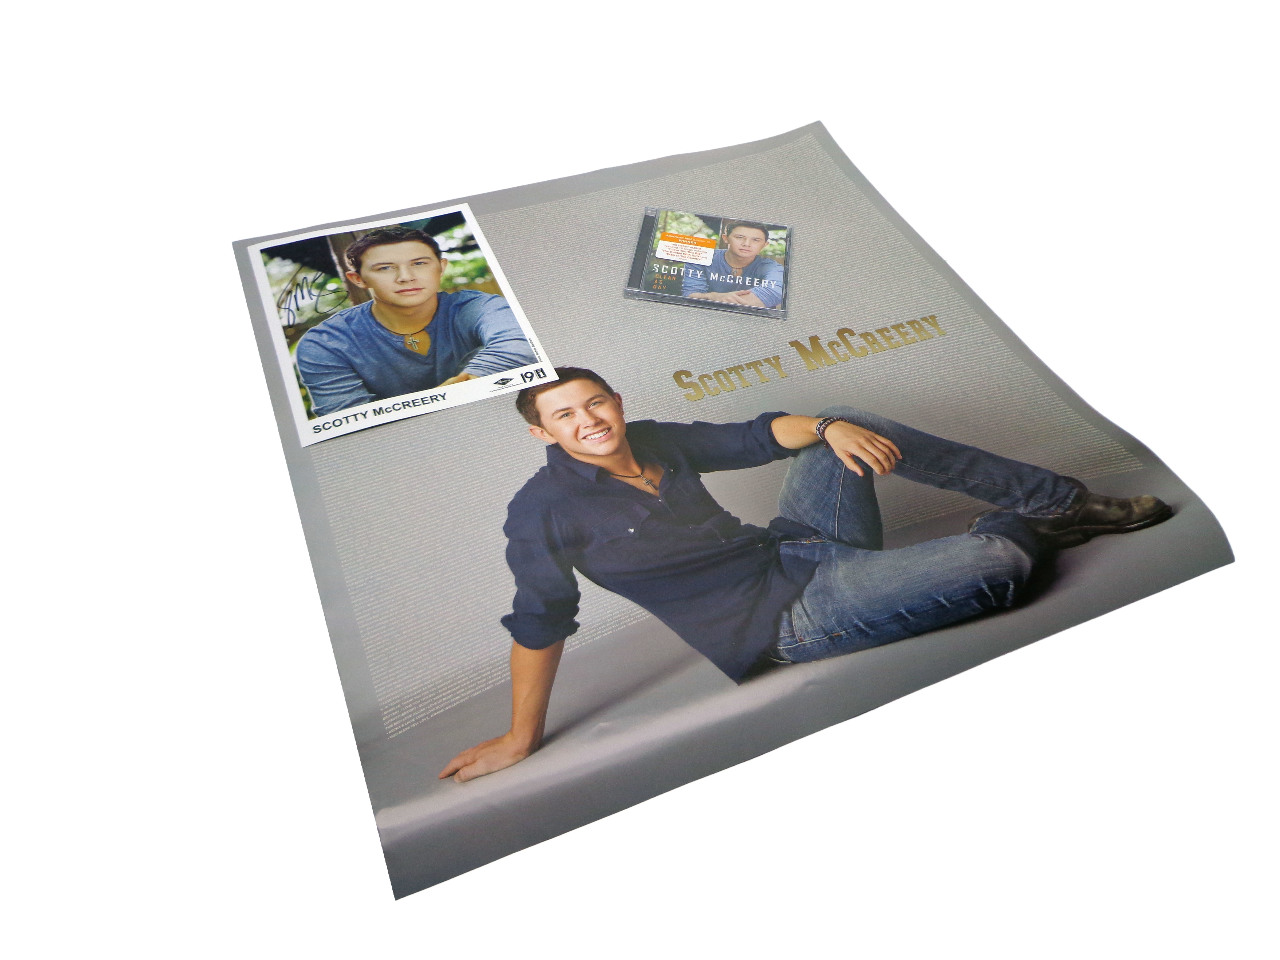 NEW Scotty McCreery Clear As Day CD + AUTOGRAPHED ORIGINAL SIGNED 8x10 + POSTER